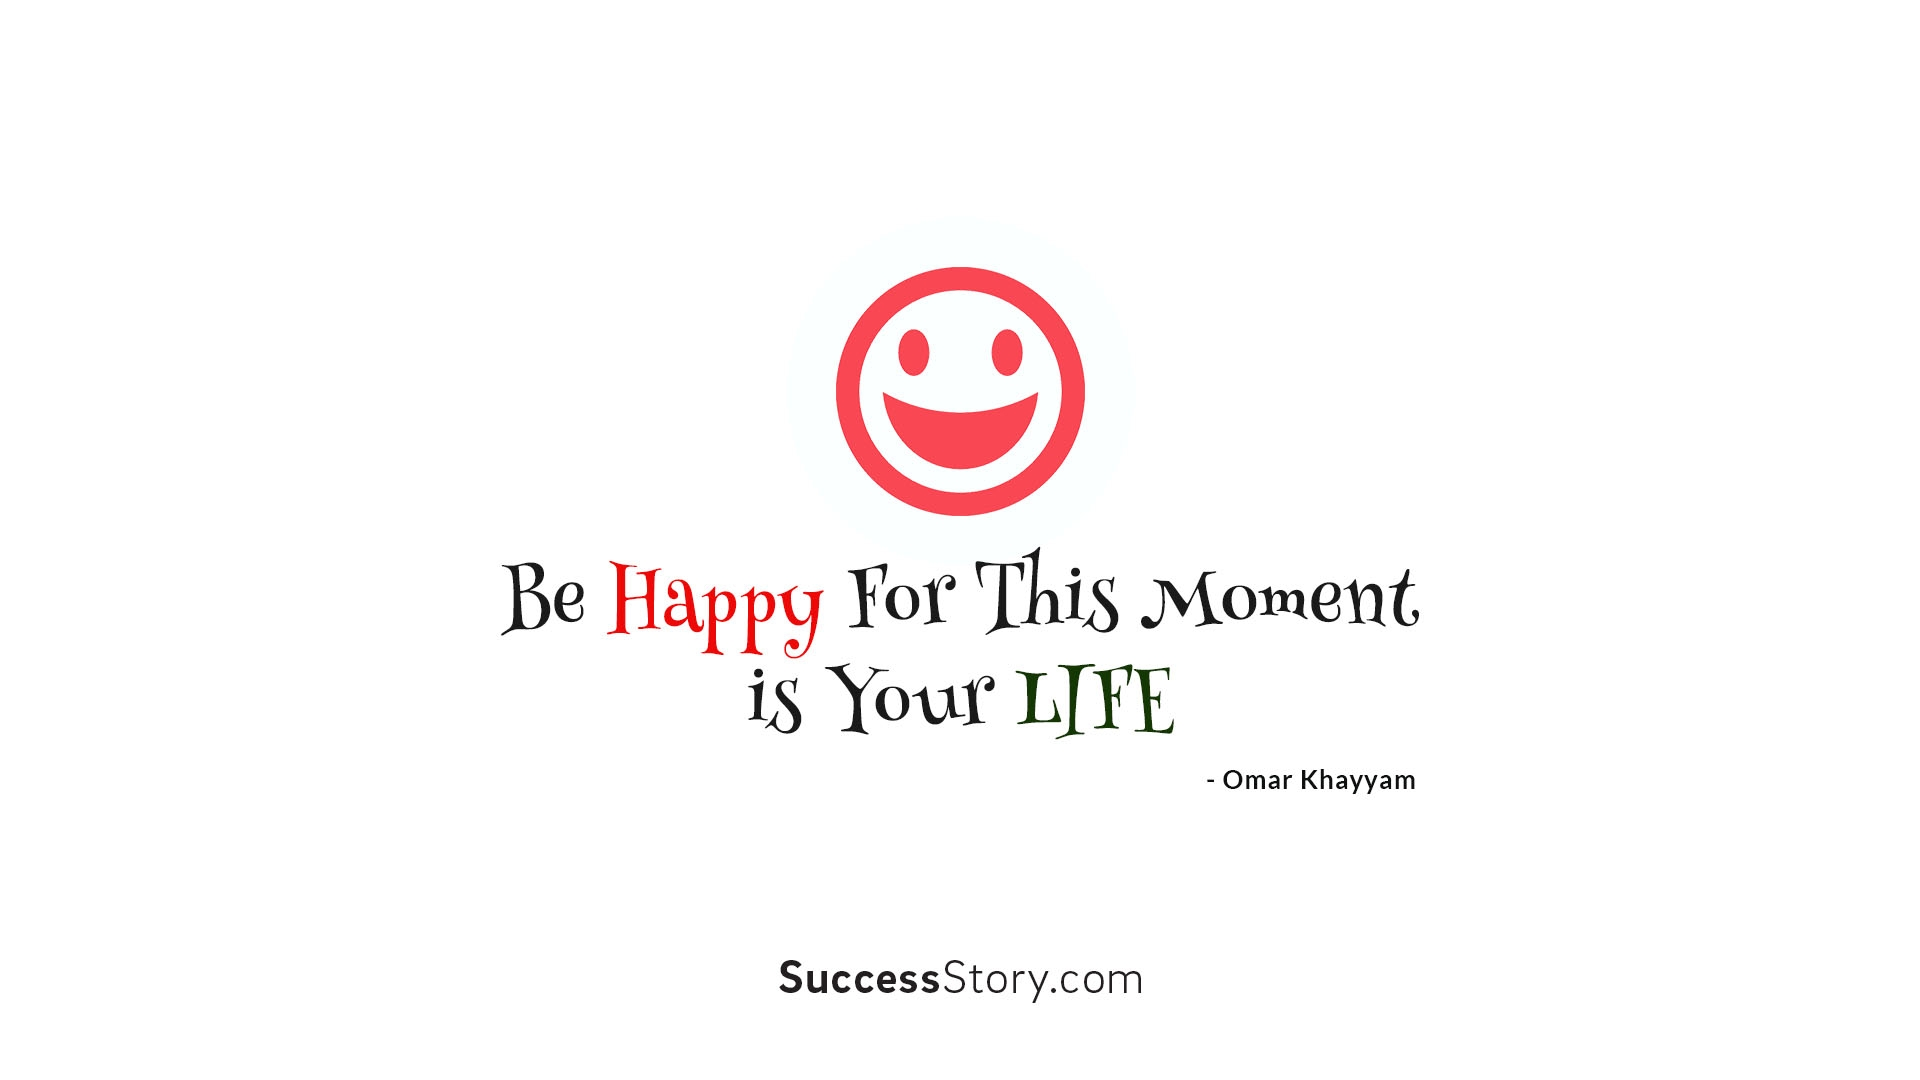 Be happy for this m